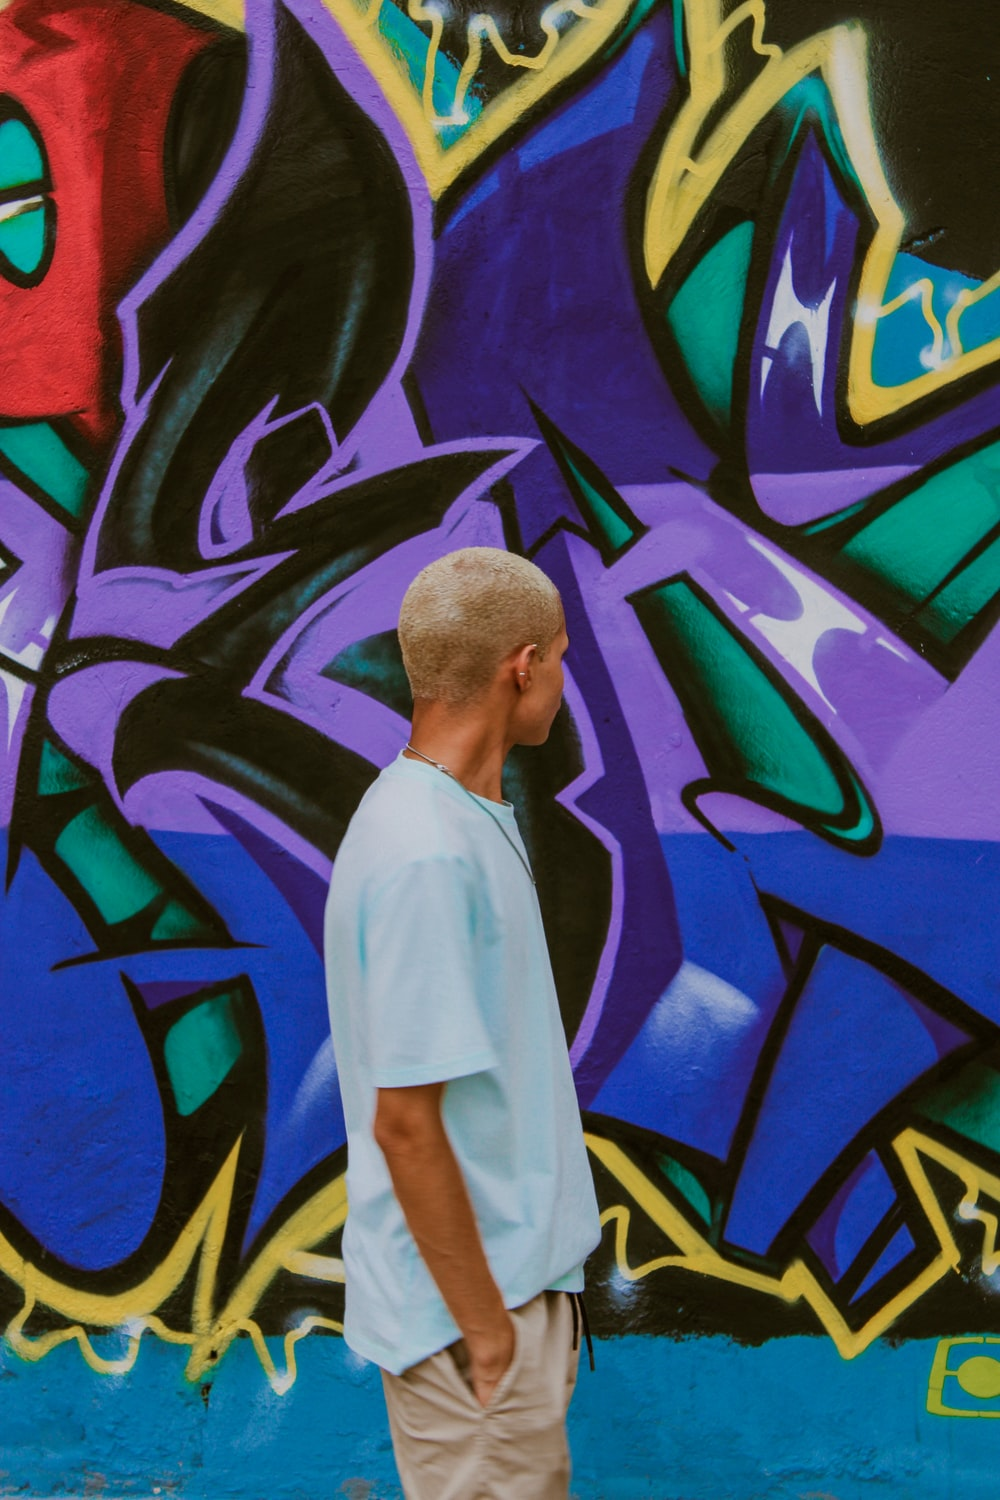 man looks and stands in front of the graffiti wall